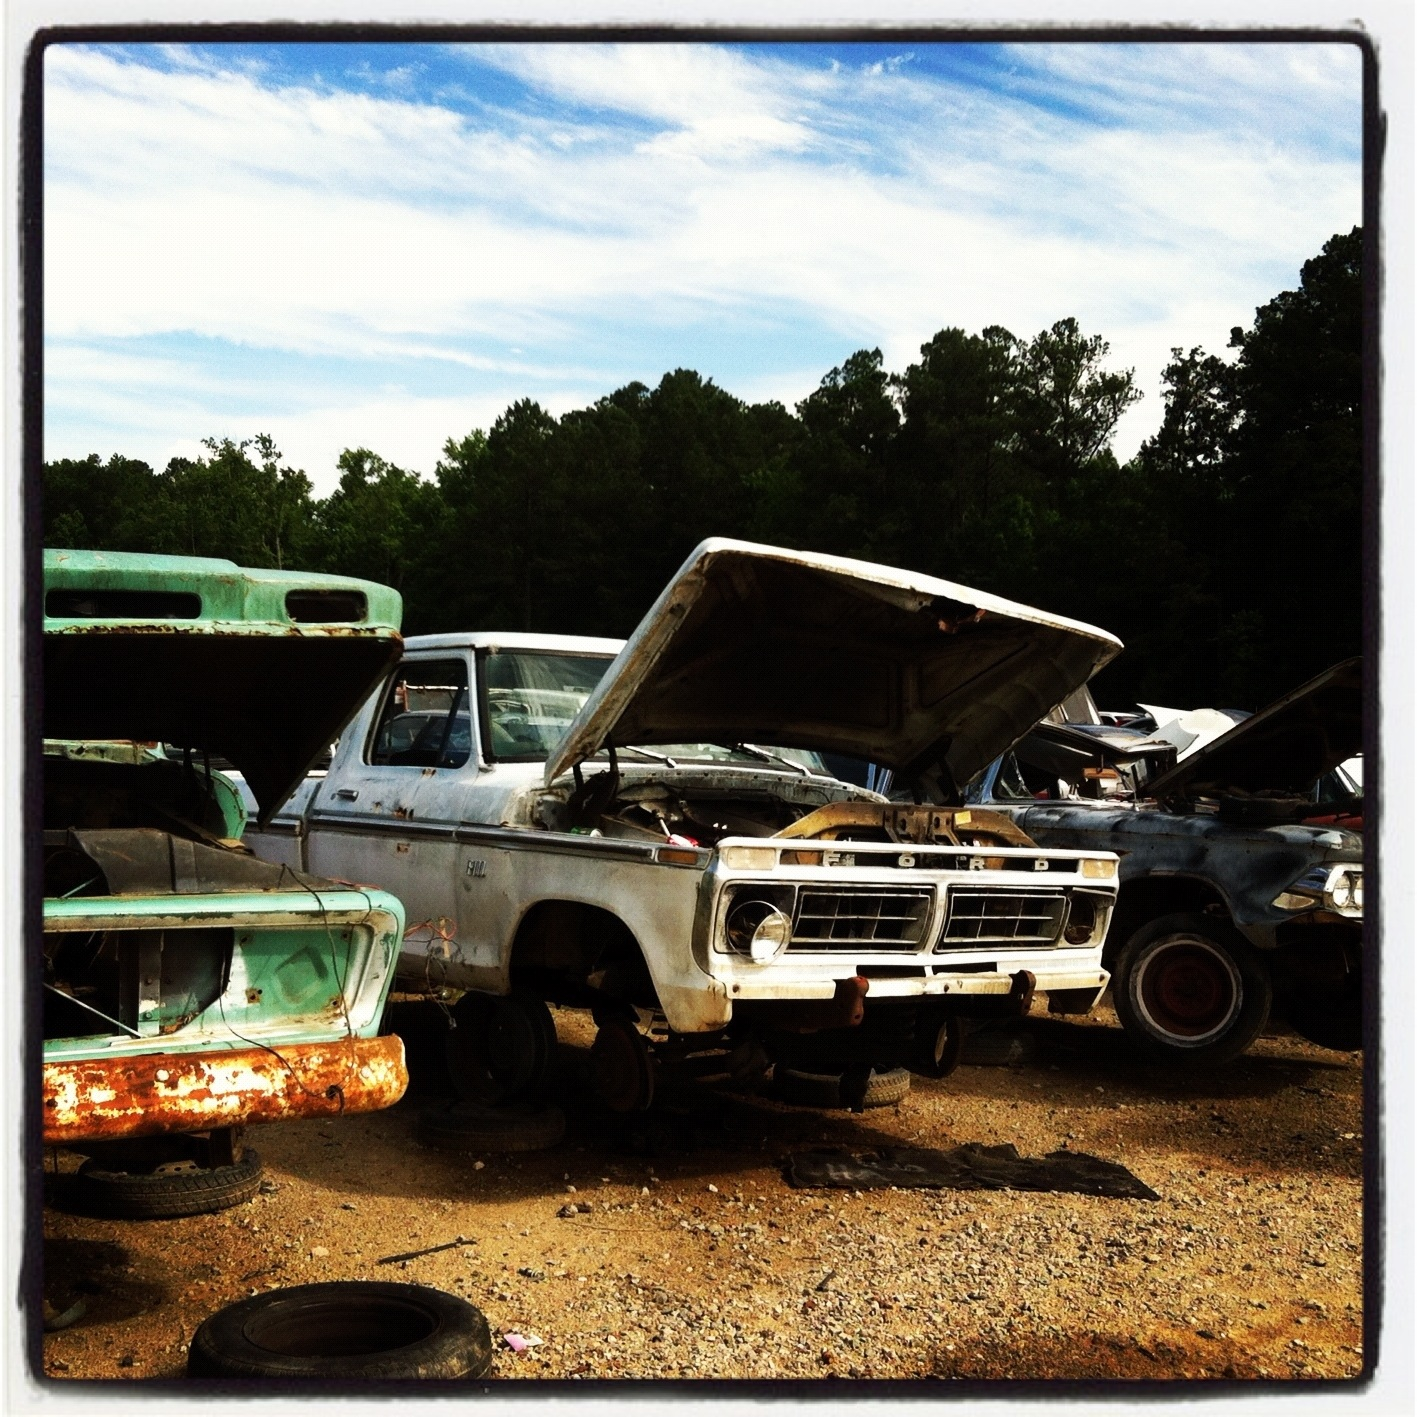 20120601 120852 I Heart Instagram & The Junkyard